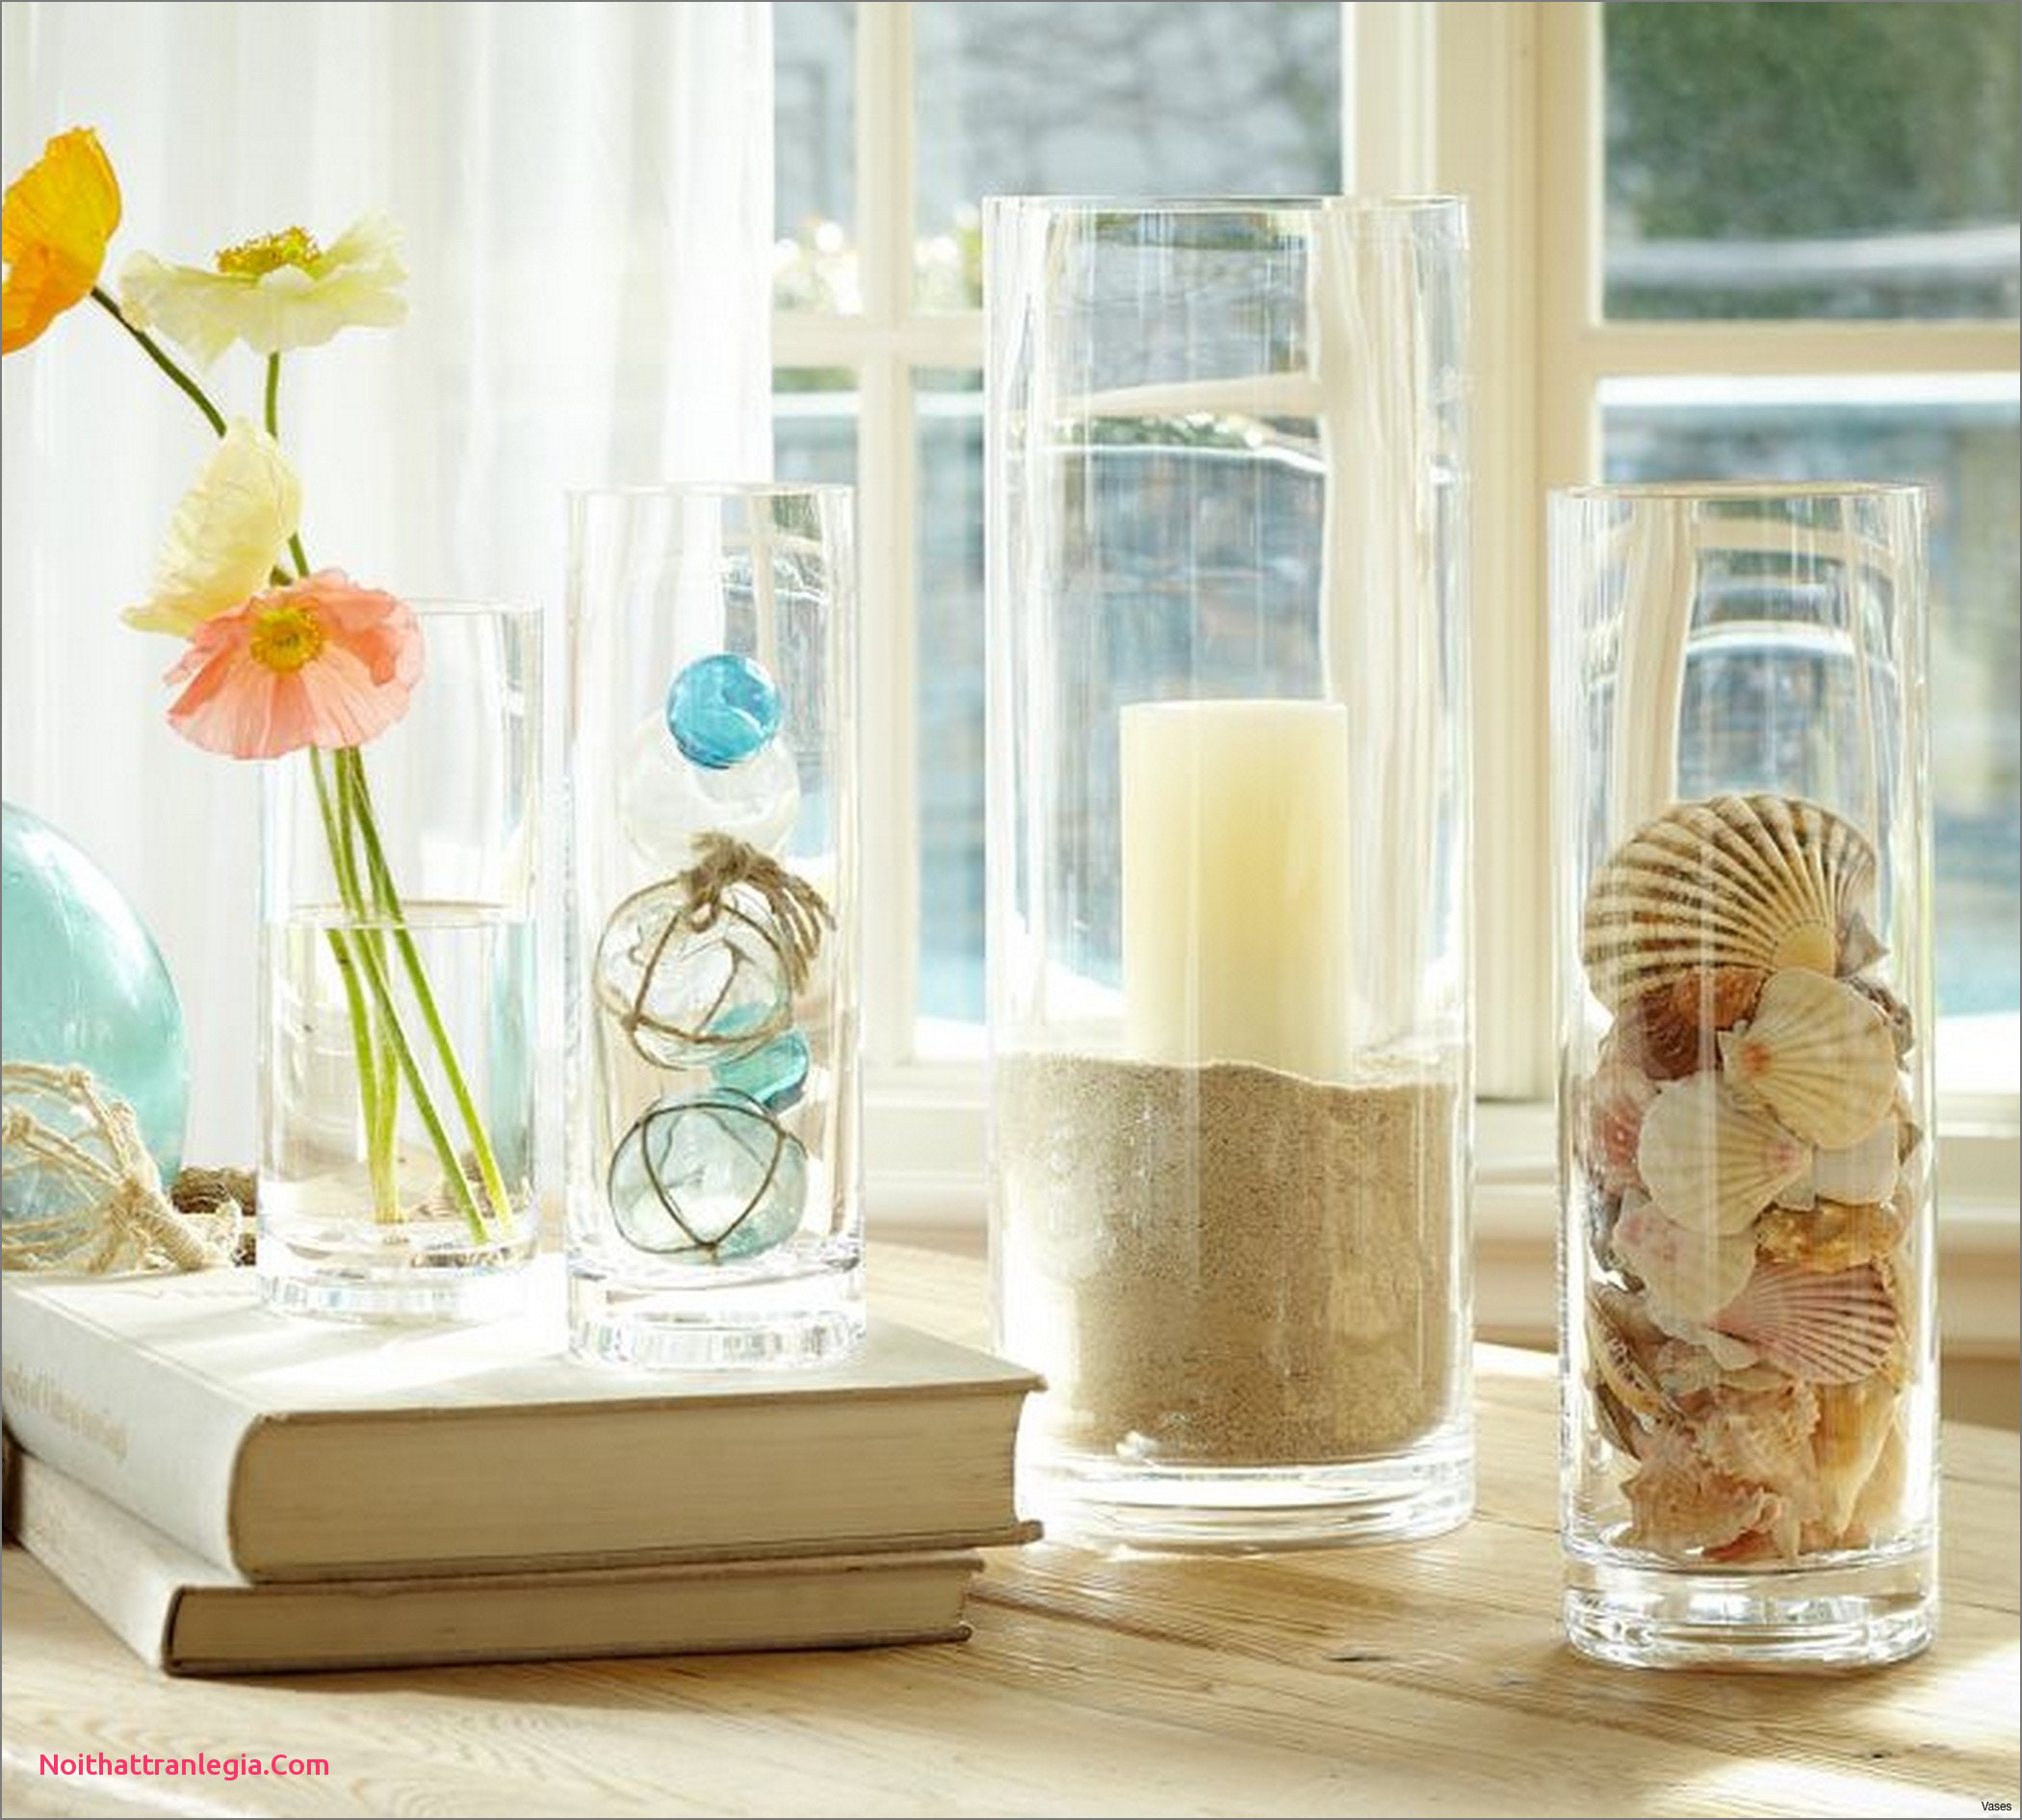 glass vase with top of 20 how to make mercury glass vases noithattranlegia vases design pertaining to glass vase fillers vase filler ideas 5h vases summer 5i 0d inspiration vase